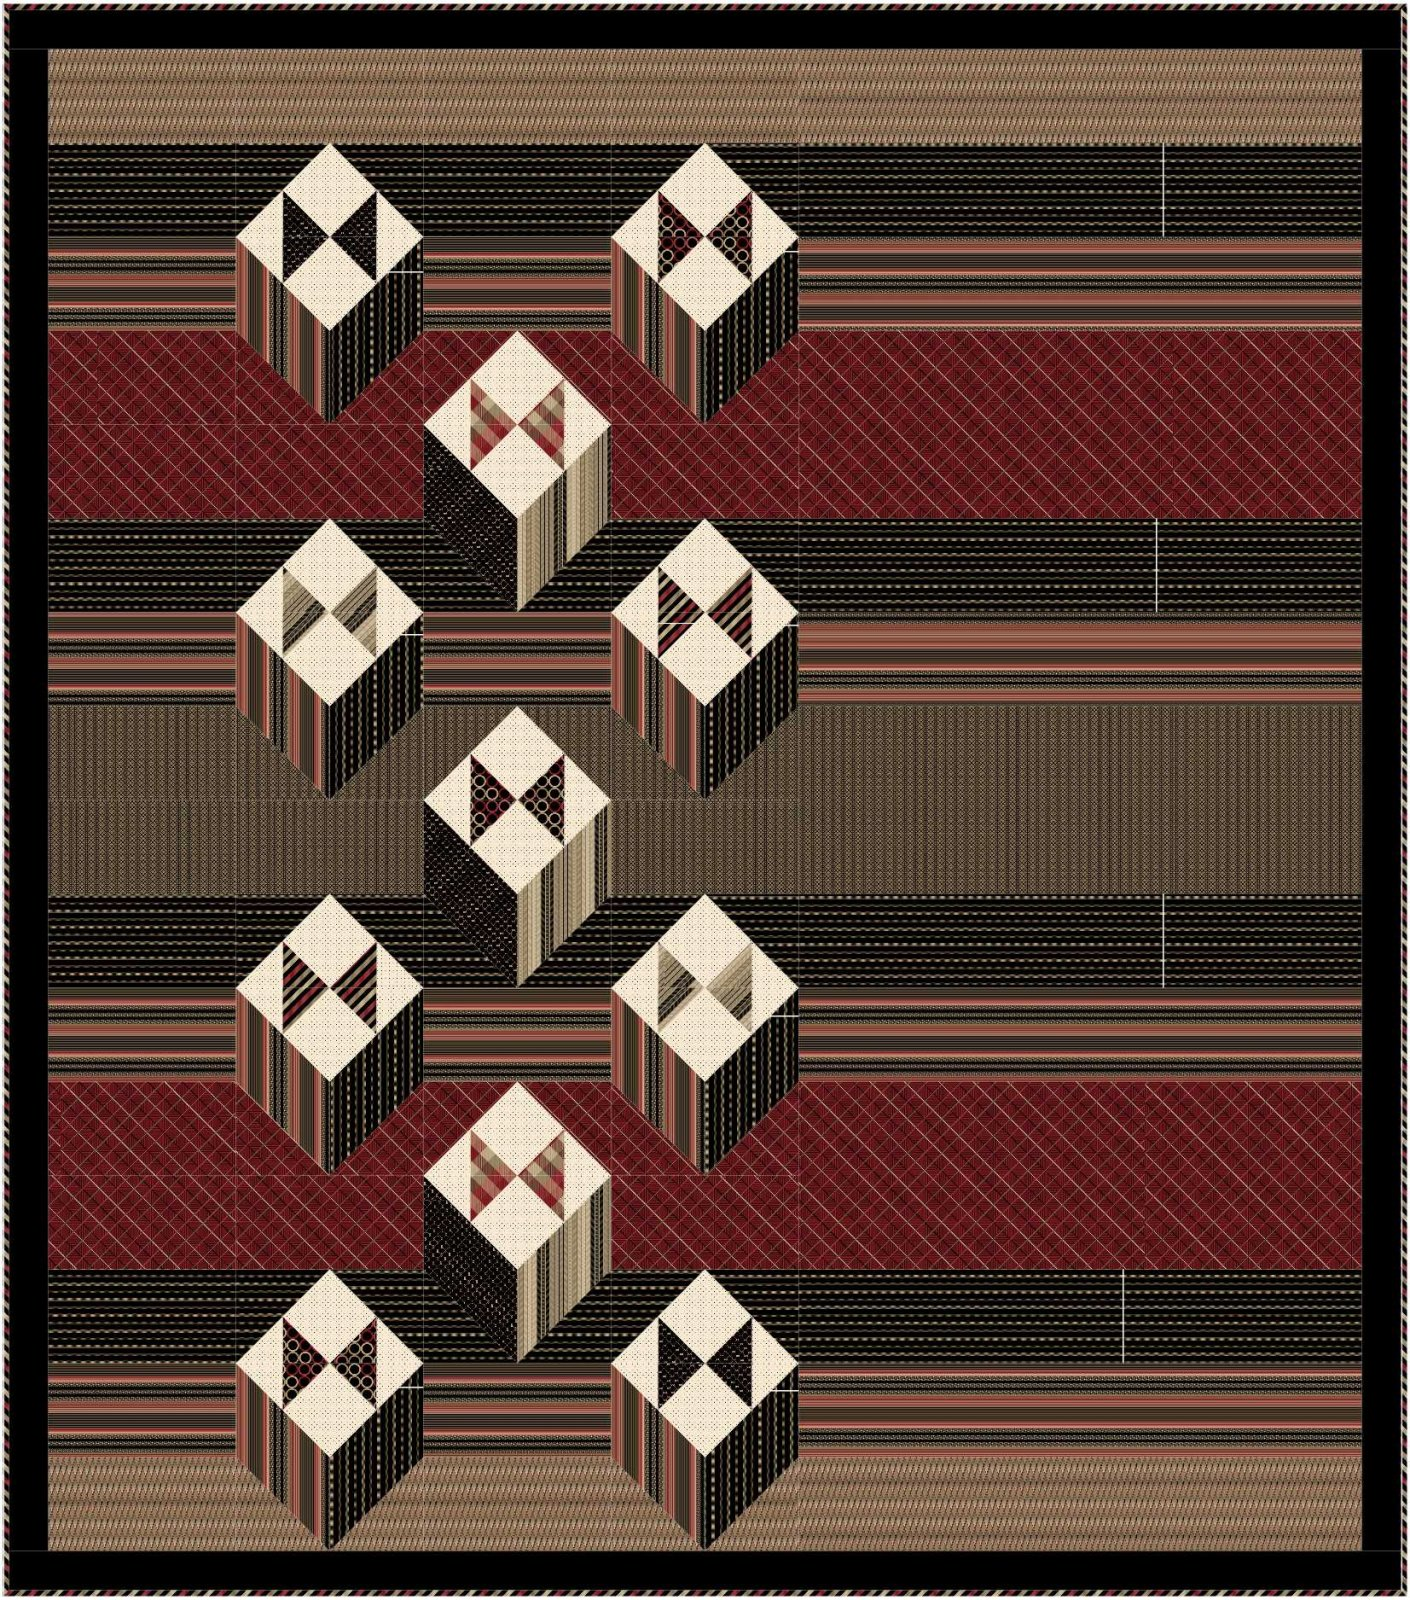 Boxed Bow Ties quilt pattern - downloadable